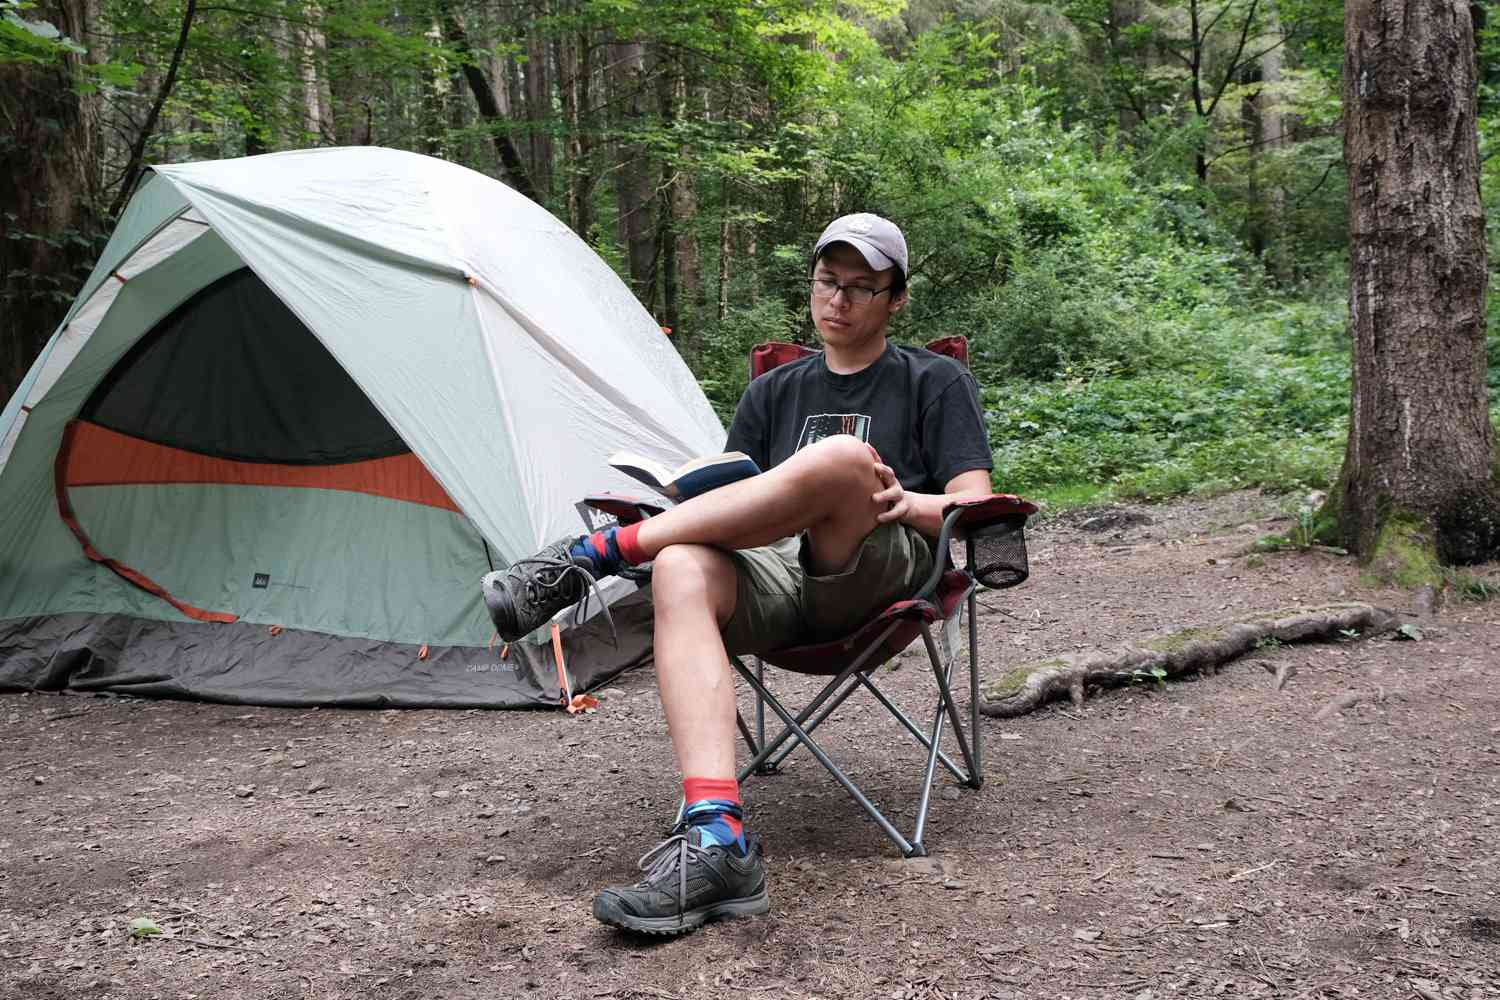 guy reads book in lawn chair next to tent while camping outside